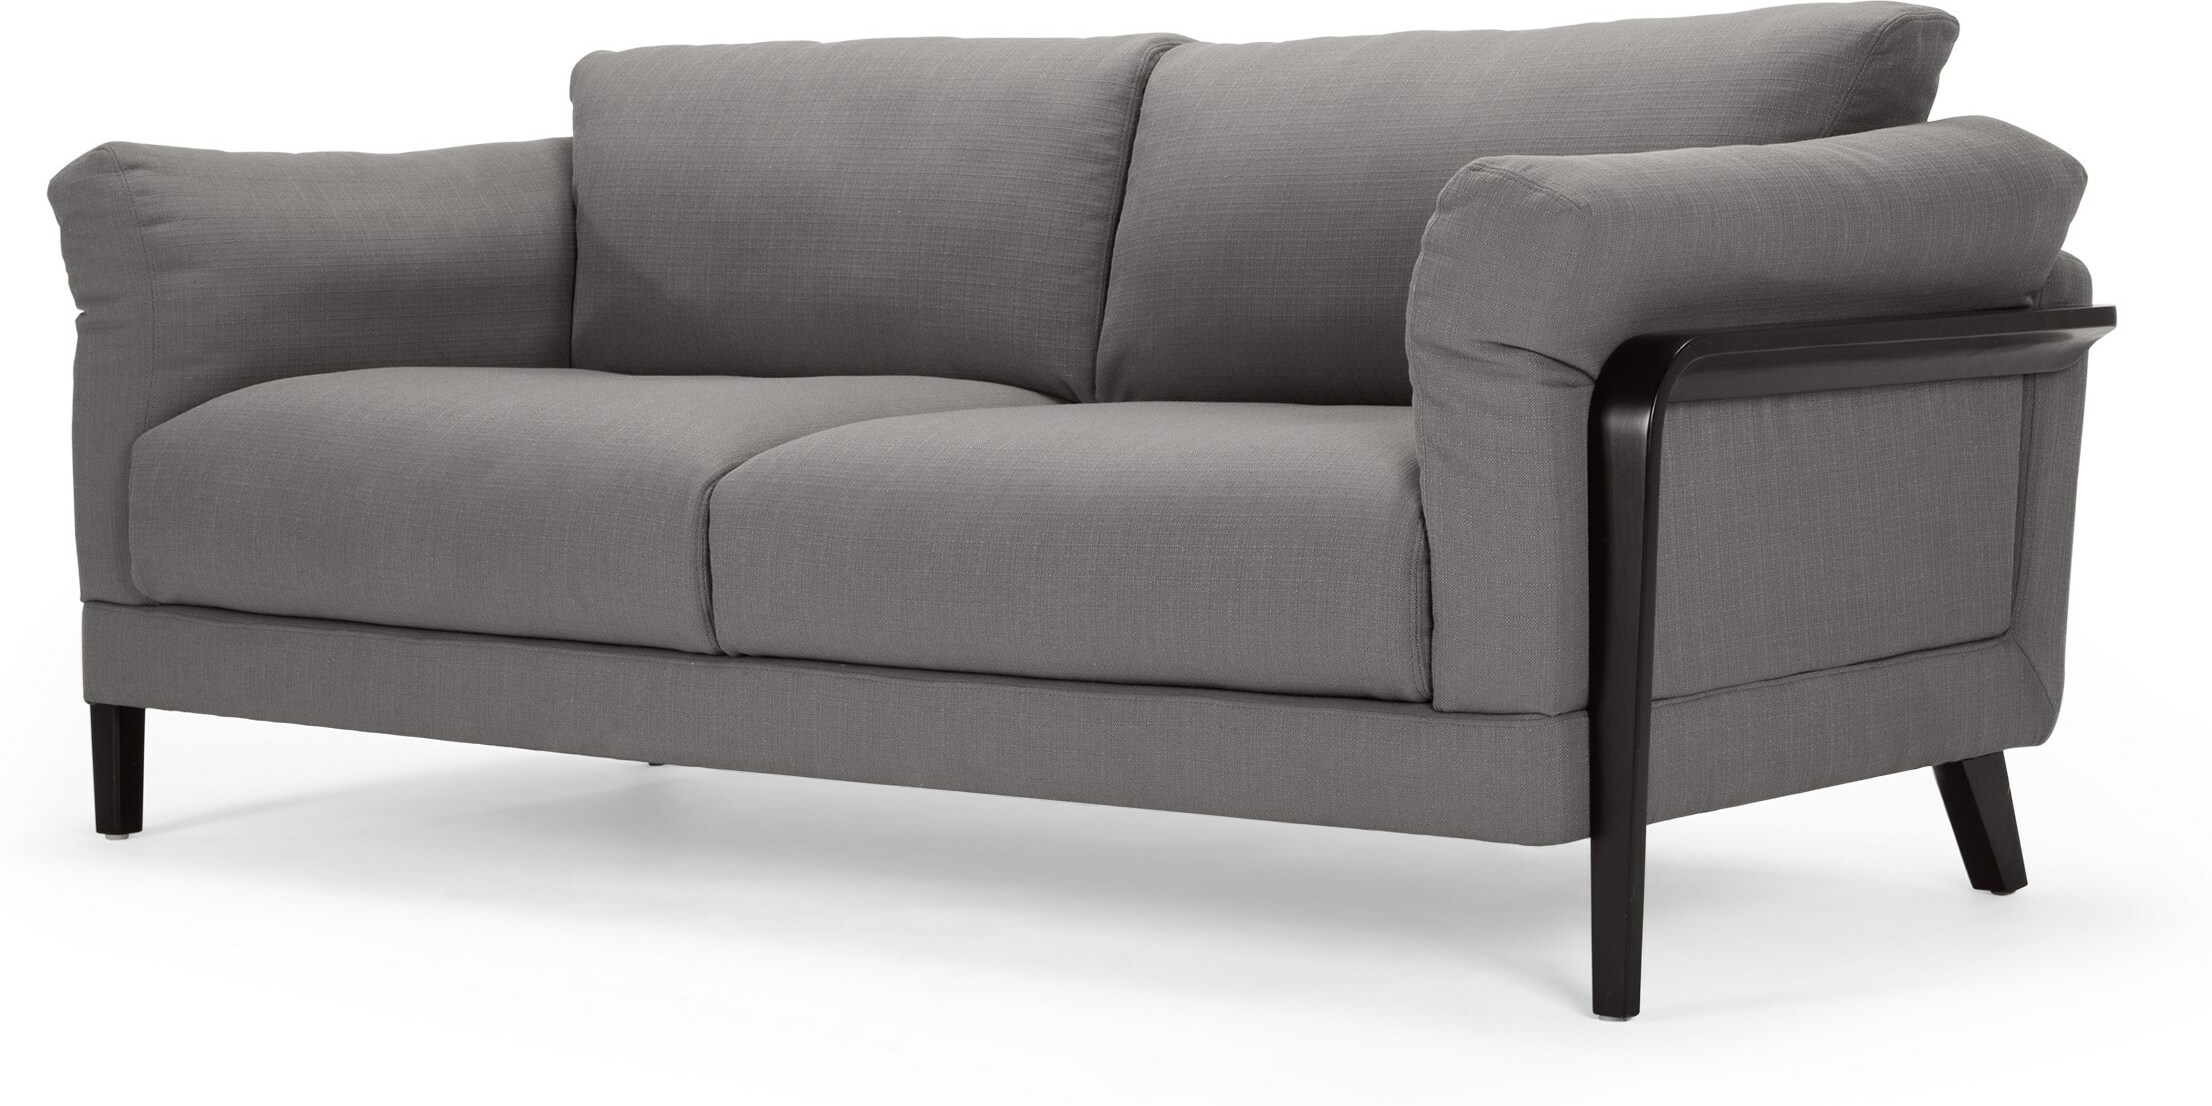 Deacon 3 Seater Sofa, Storm Grey